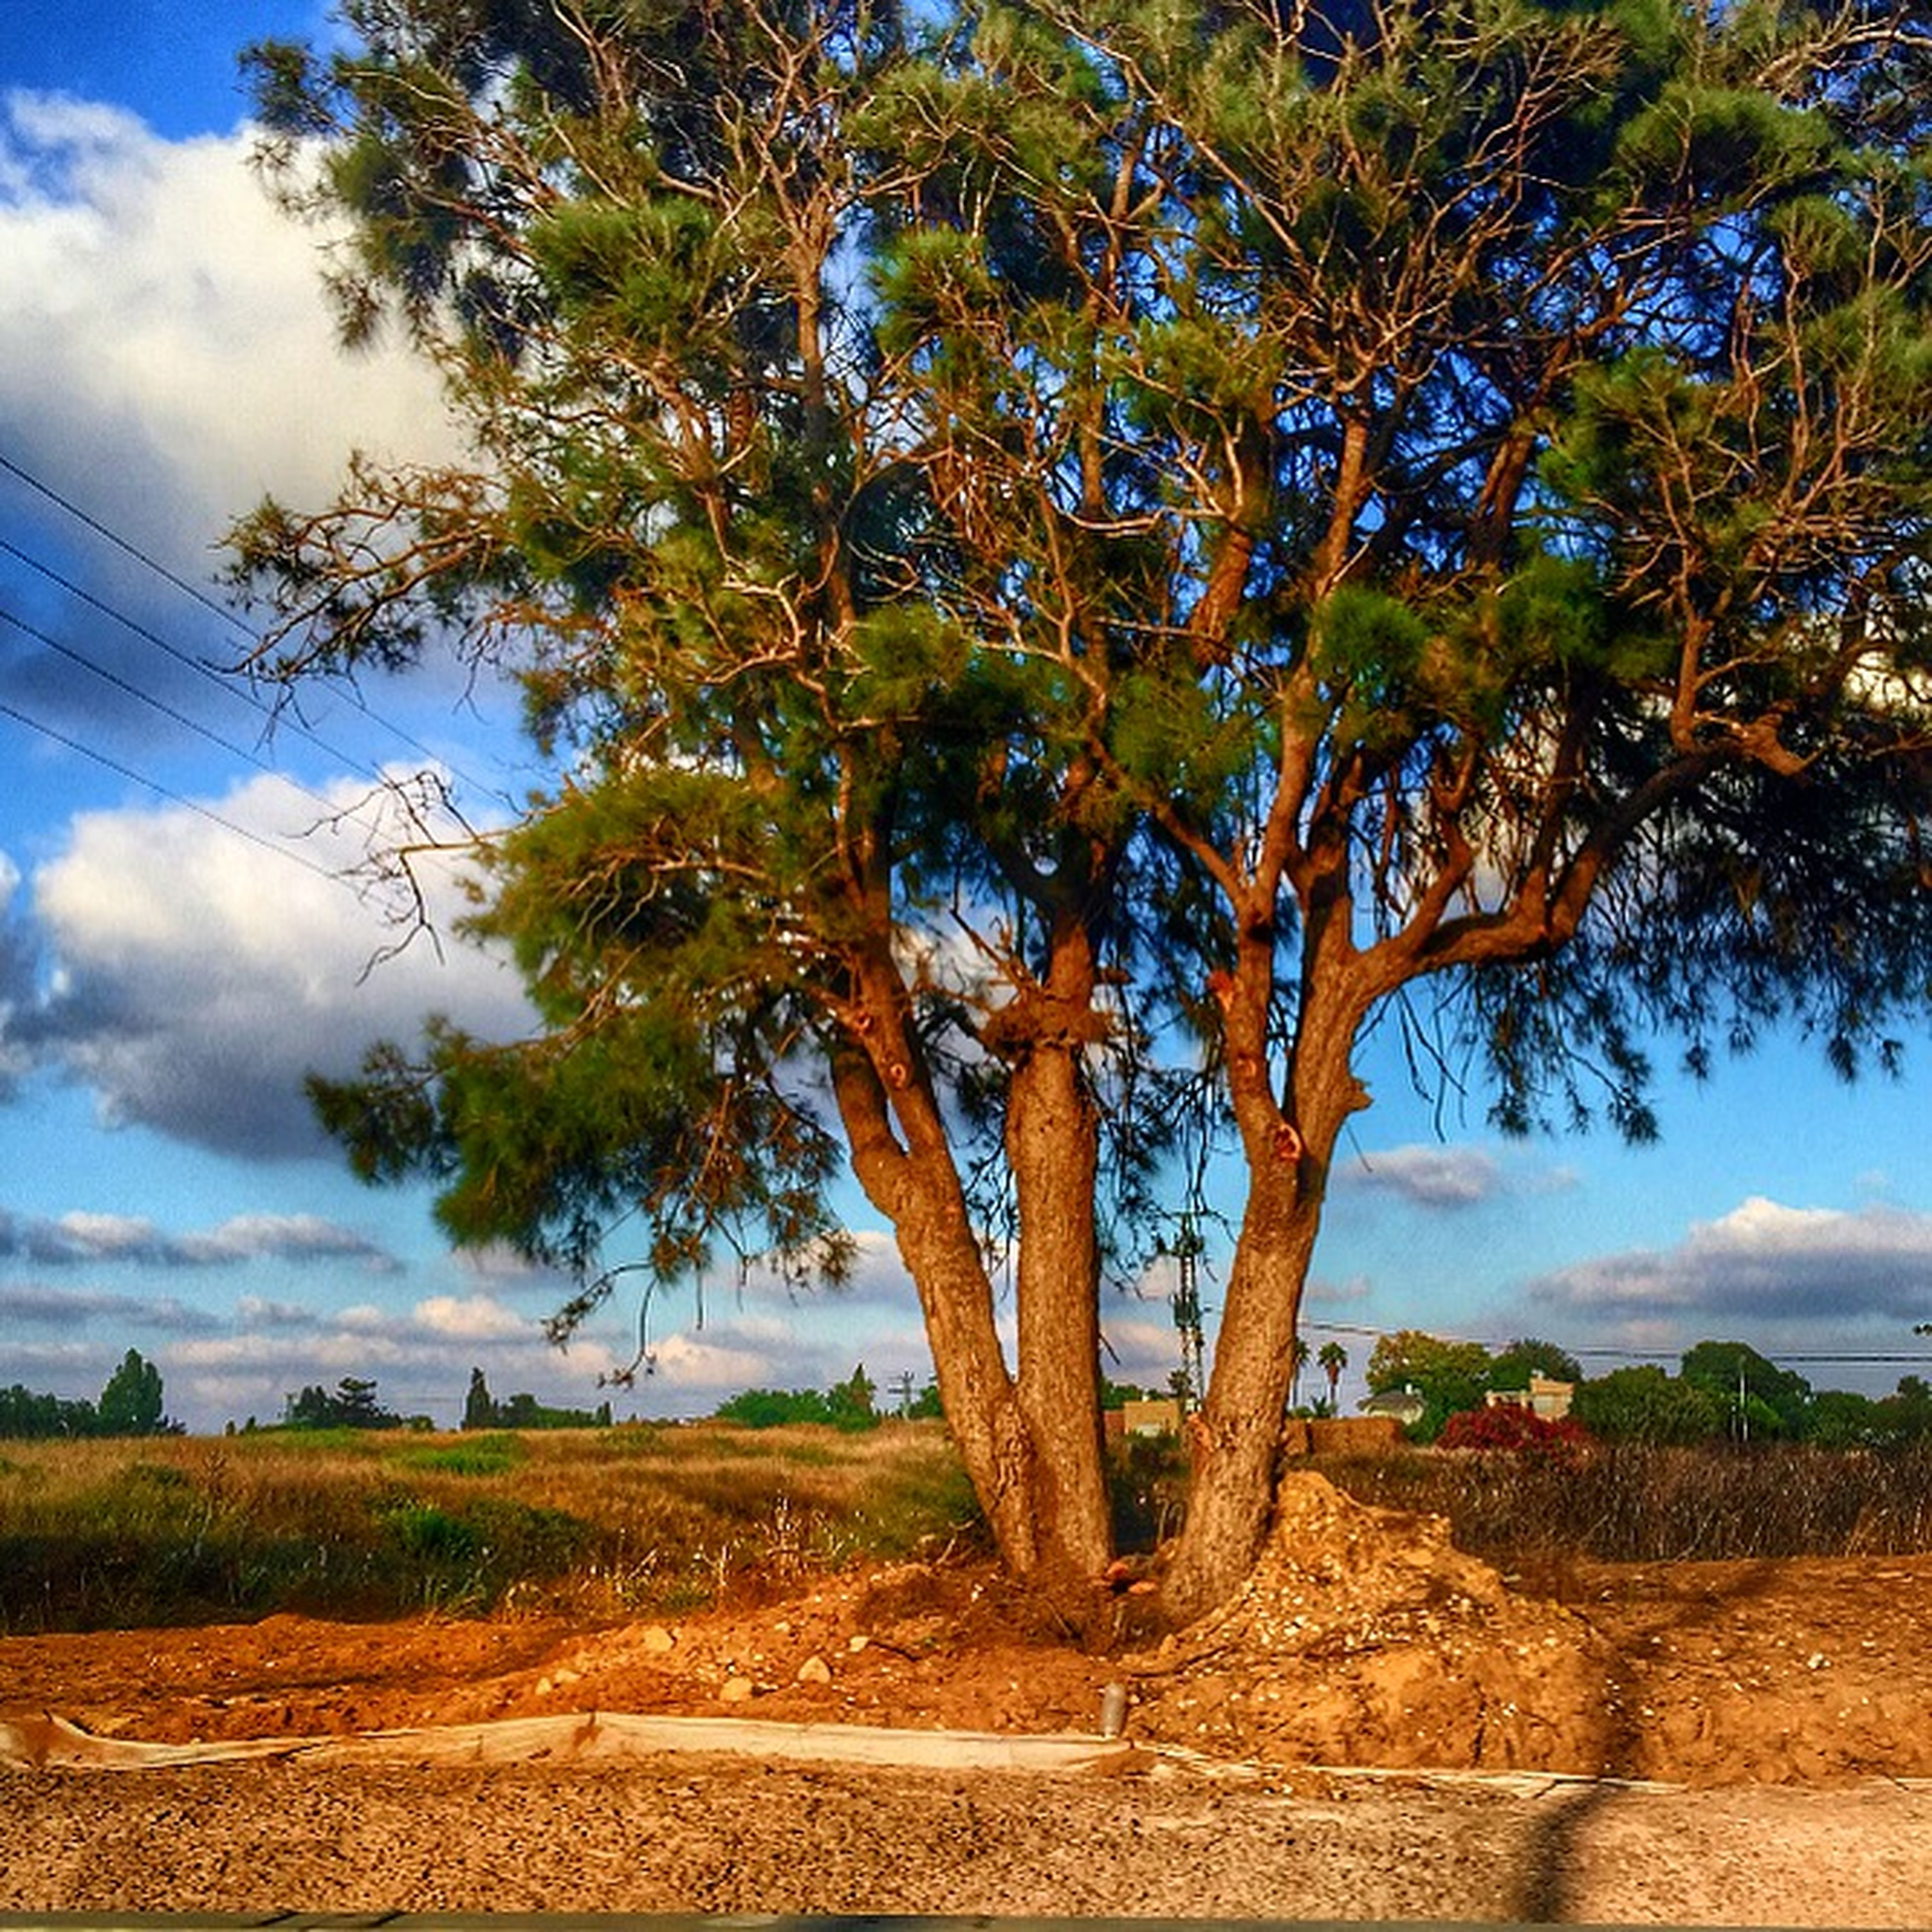 tree, sky, tranquility, growth, tranquil scene, cloud - sky, nature, beauty in nature, scenics, cloud, landscape, sunlight, branch, low angle view, field, day, outdoors, no people, tree trunk, green color